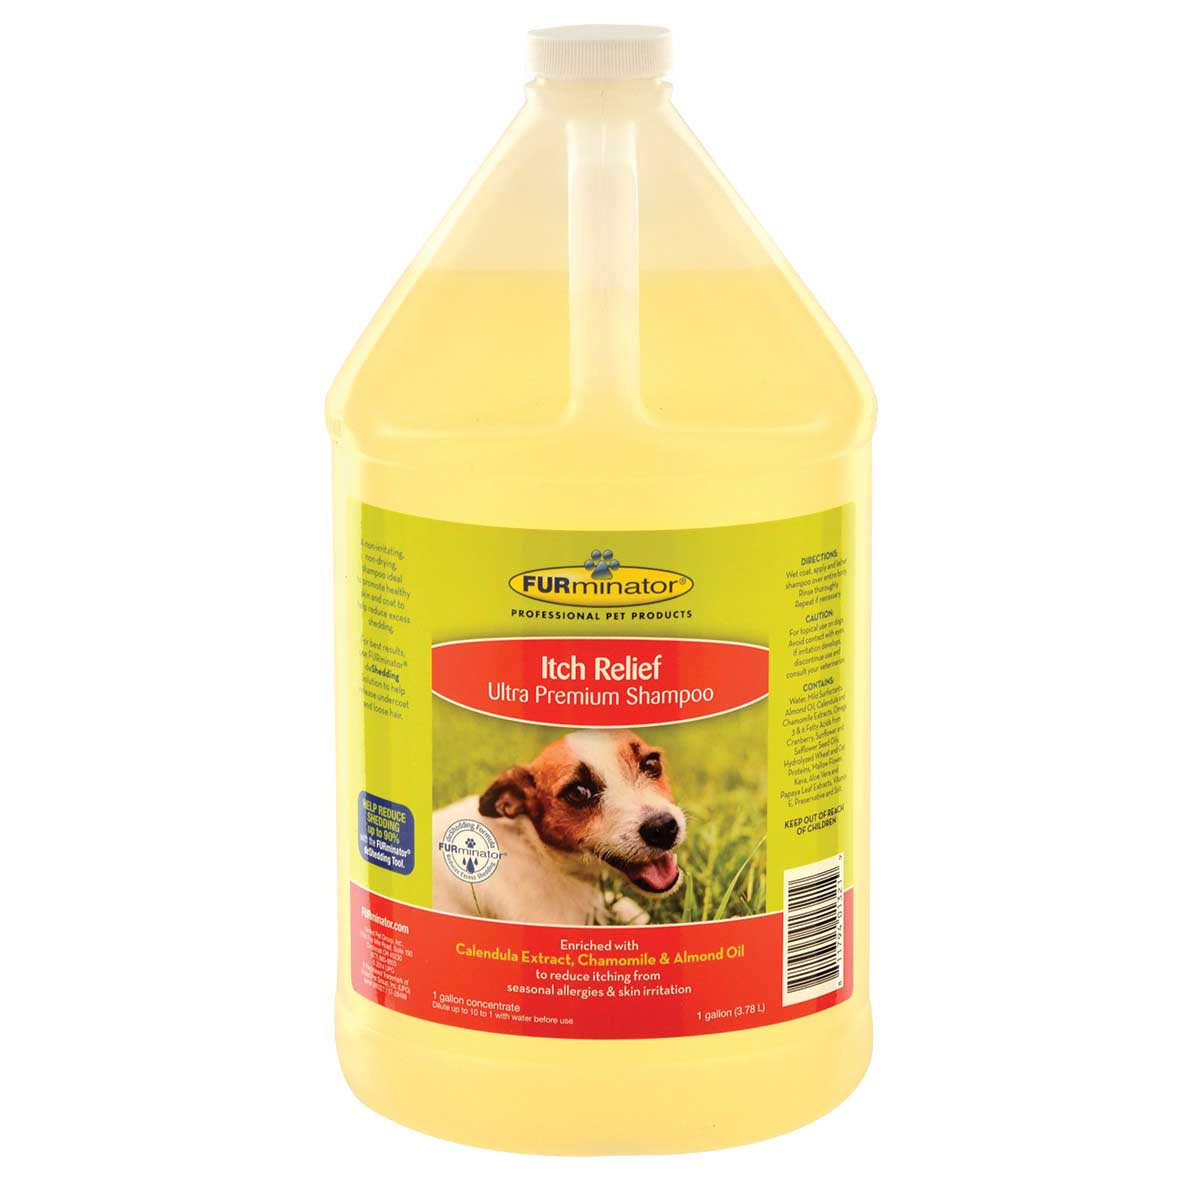 Concentrated 10 to 1 Gallon of Furminator Itch Relief Ultra Premium Shampoo